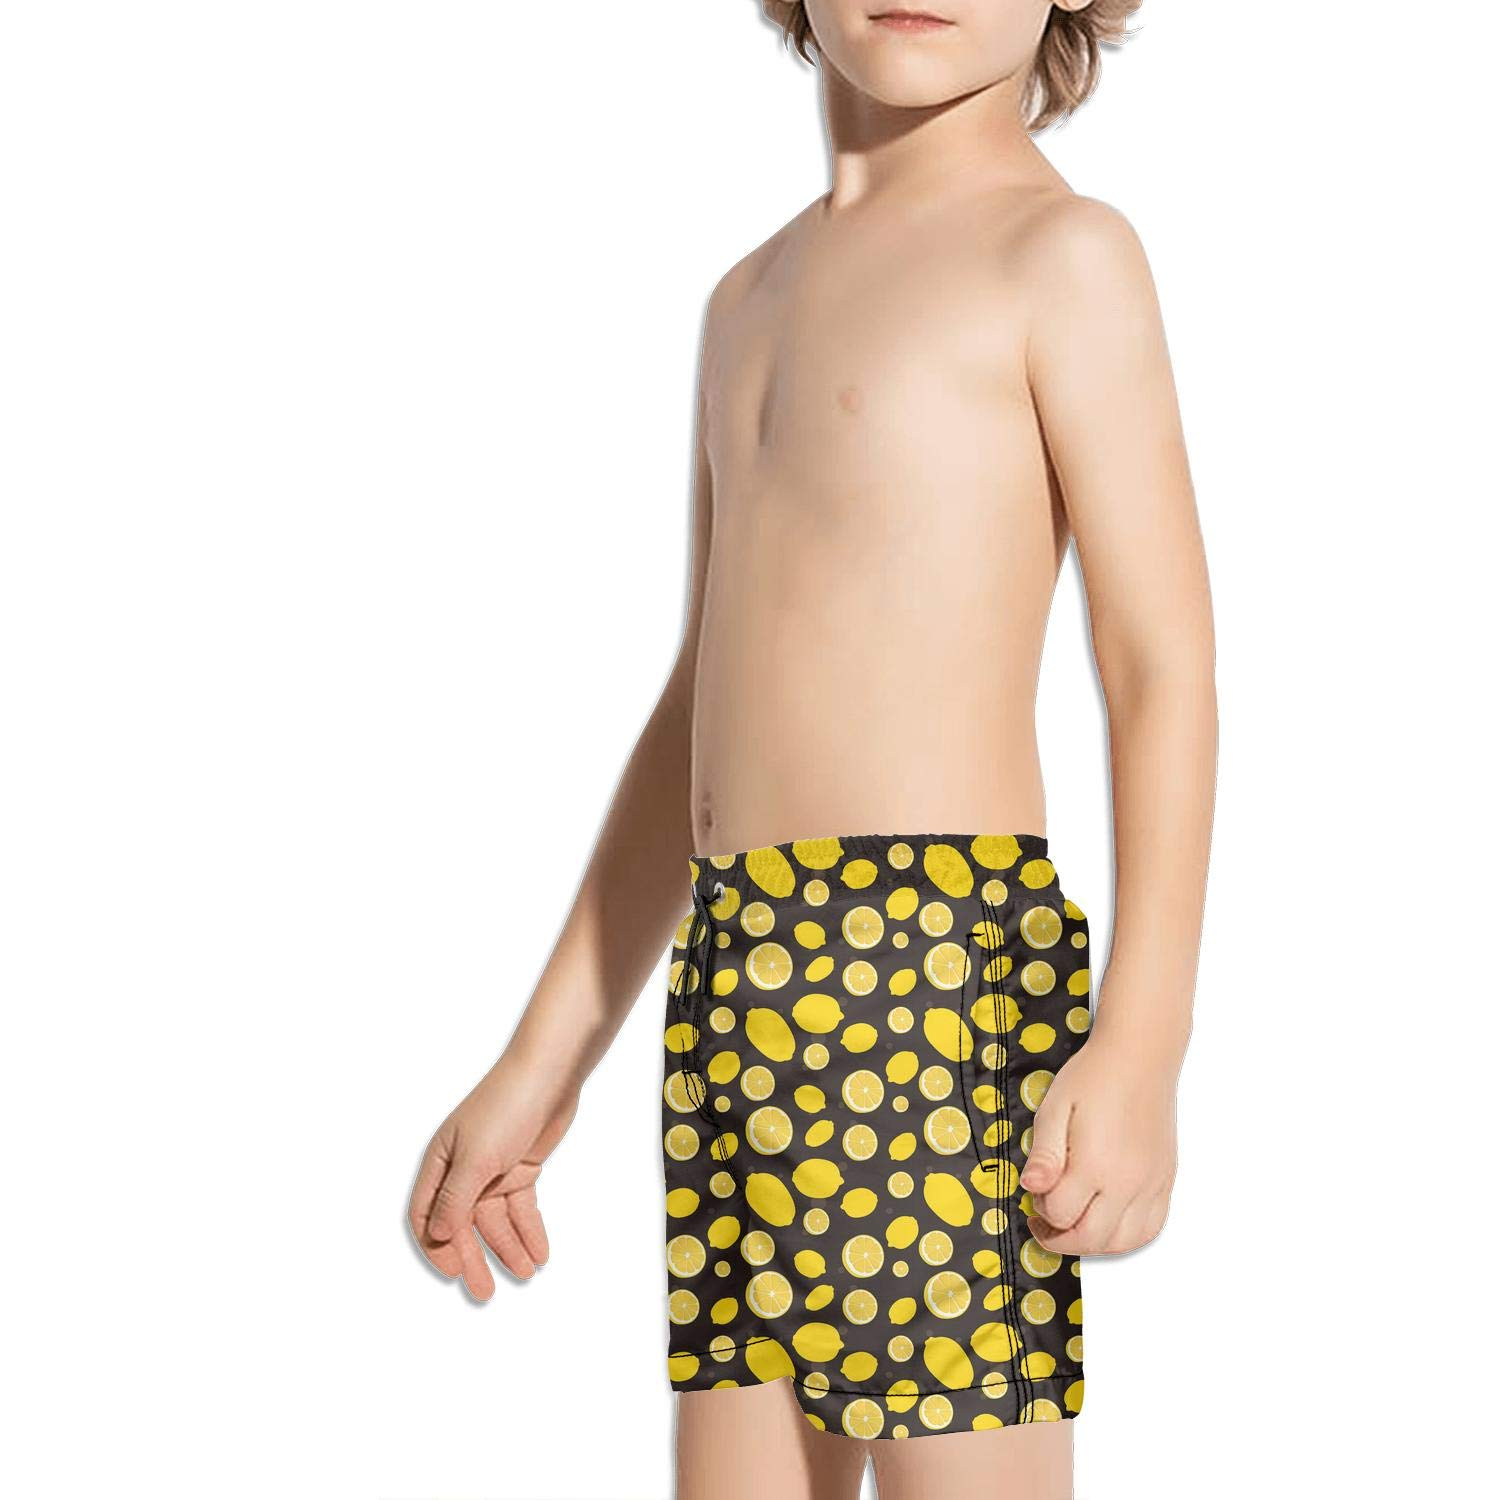 XULANG Kids Boys Girls Yellow Lemon Cartoon Board Shorts Watersports Training Fashion Boardshorts